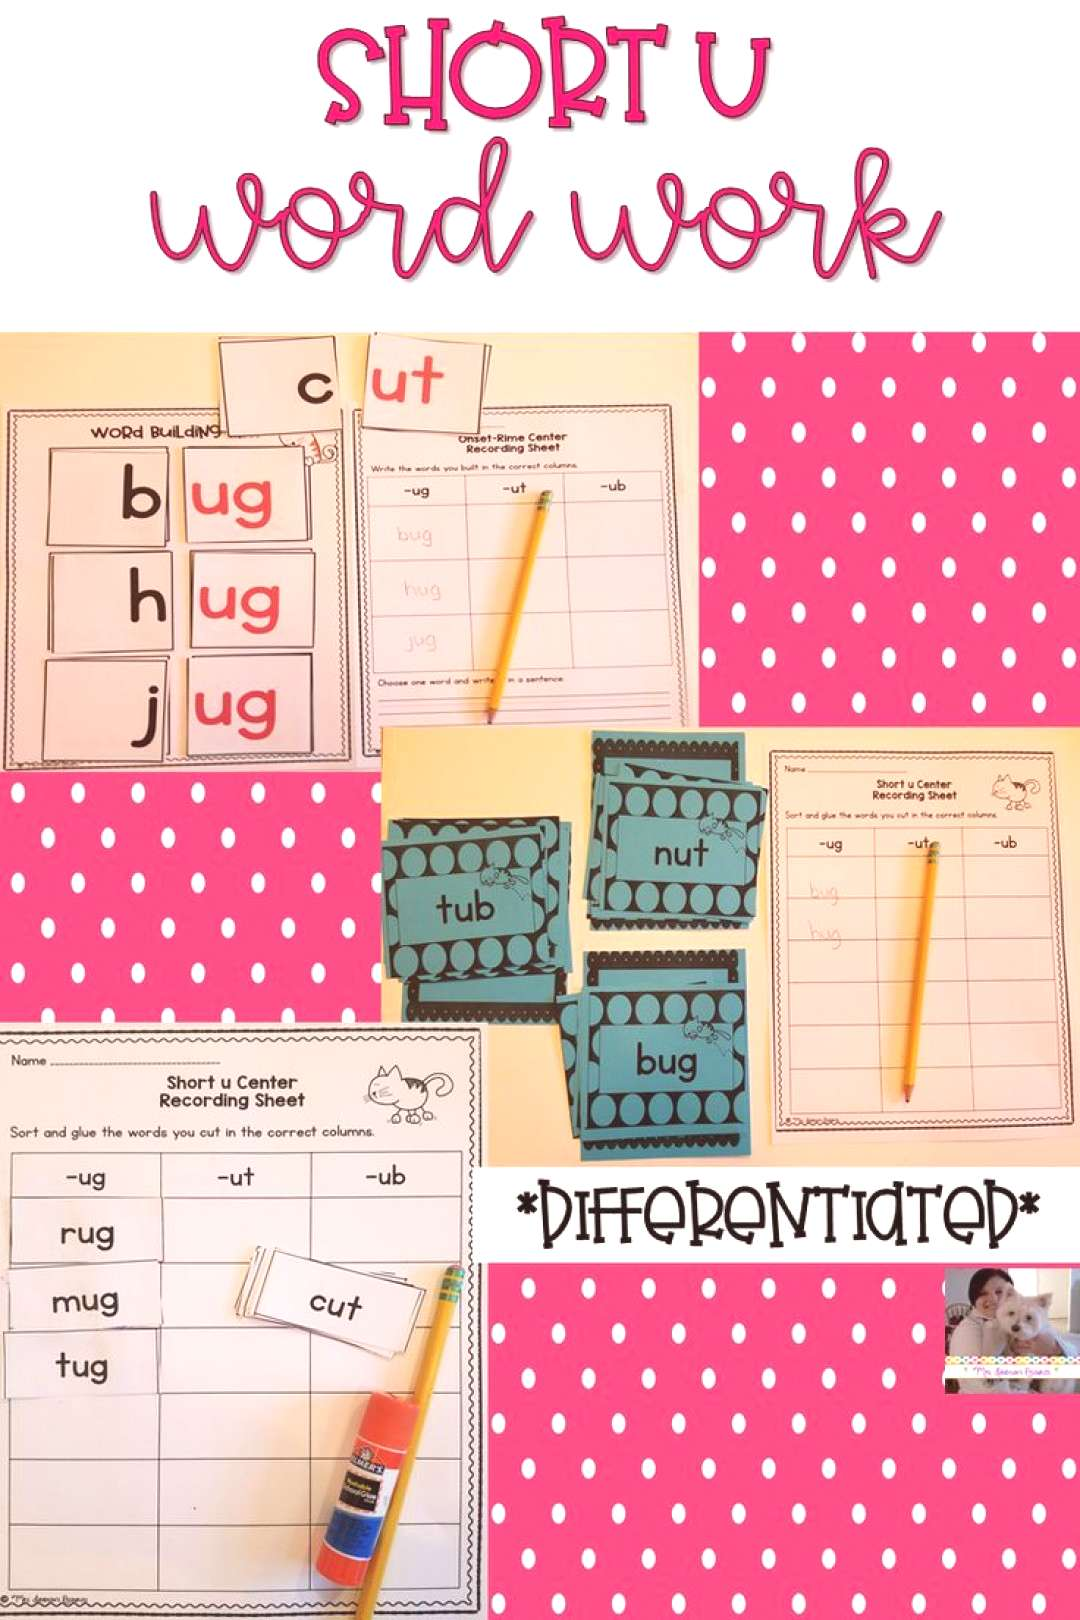 Short u Word Work These hands-on and engaging short u word work activities will help students maste